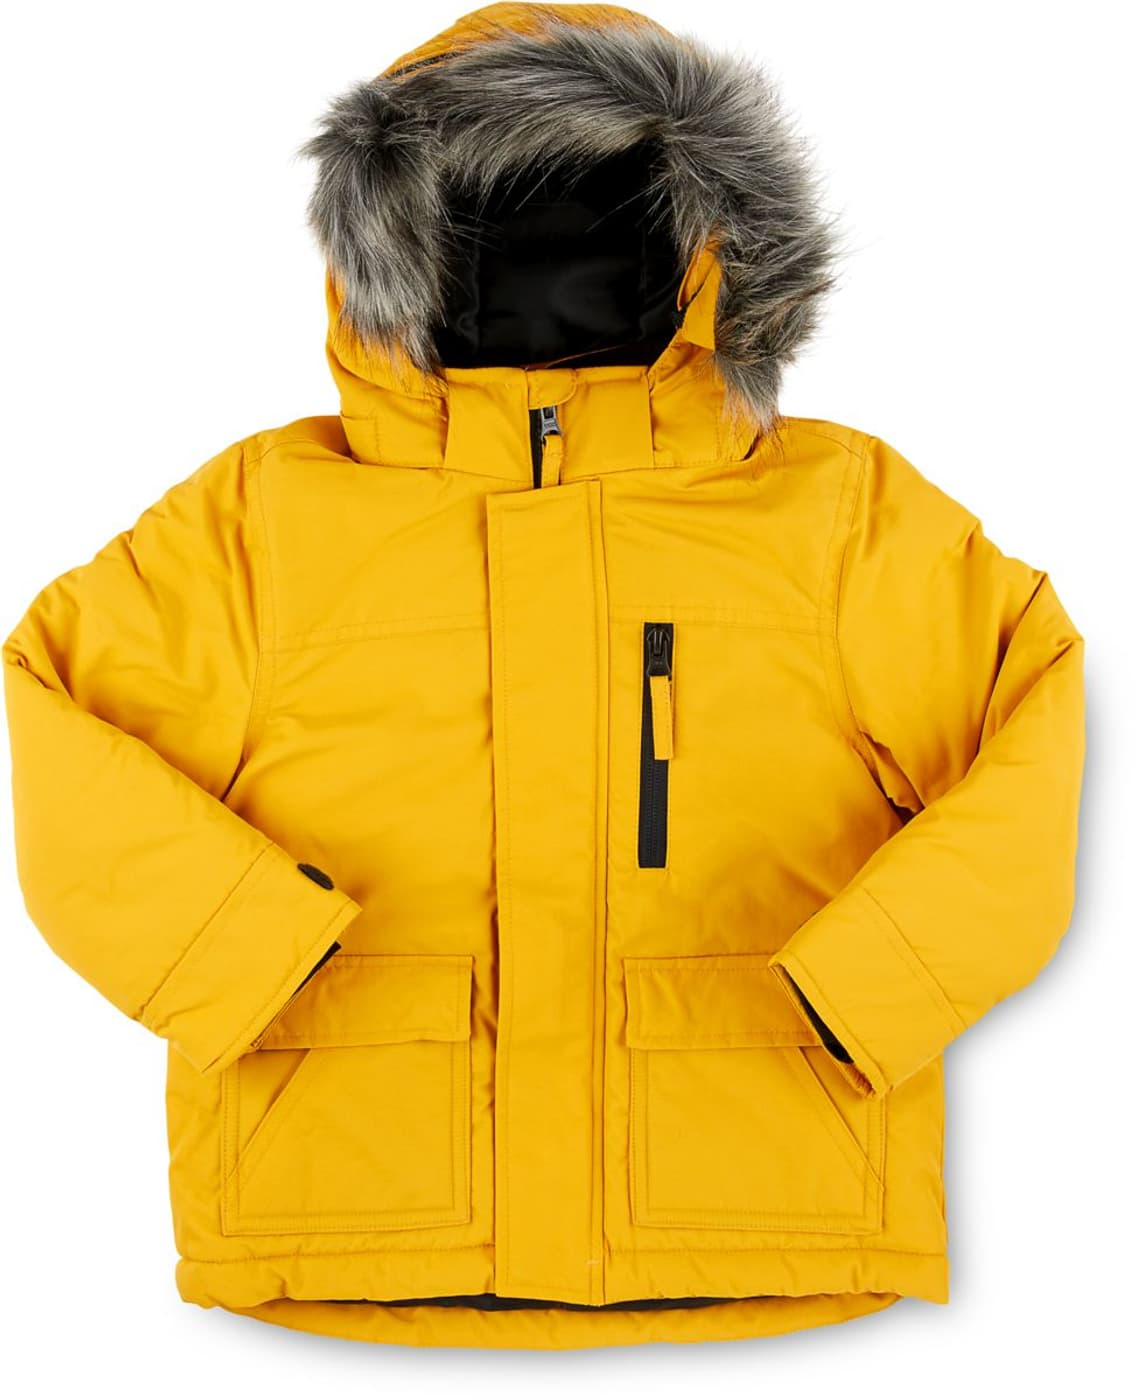 comprare on line 8aa5d af454 Giacca giallo senape